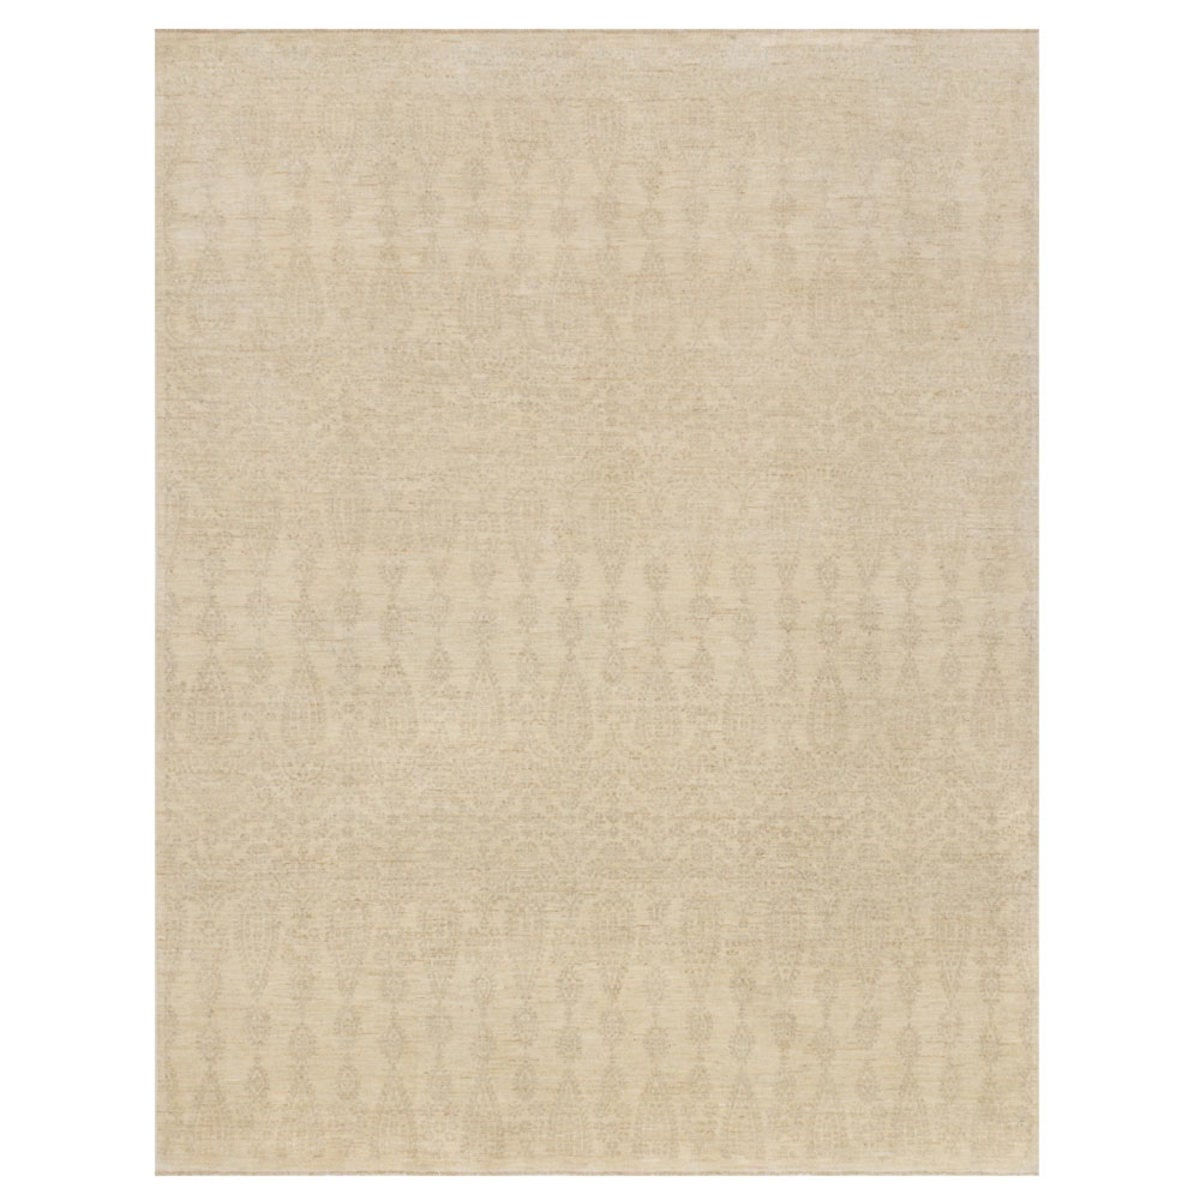 "Loloi Essex Fading Arabesque Rug in Ivory - 9'6"" x 13'6""  - Ivory"